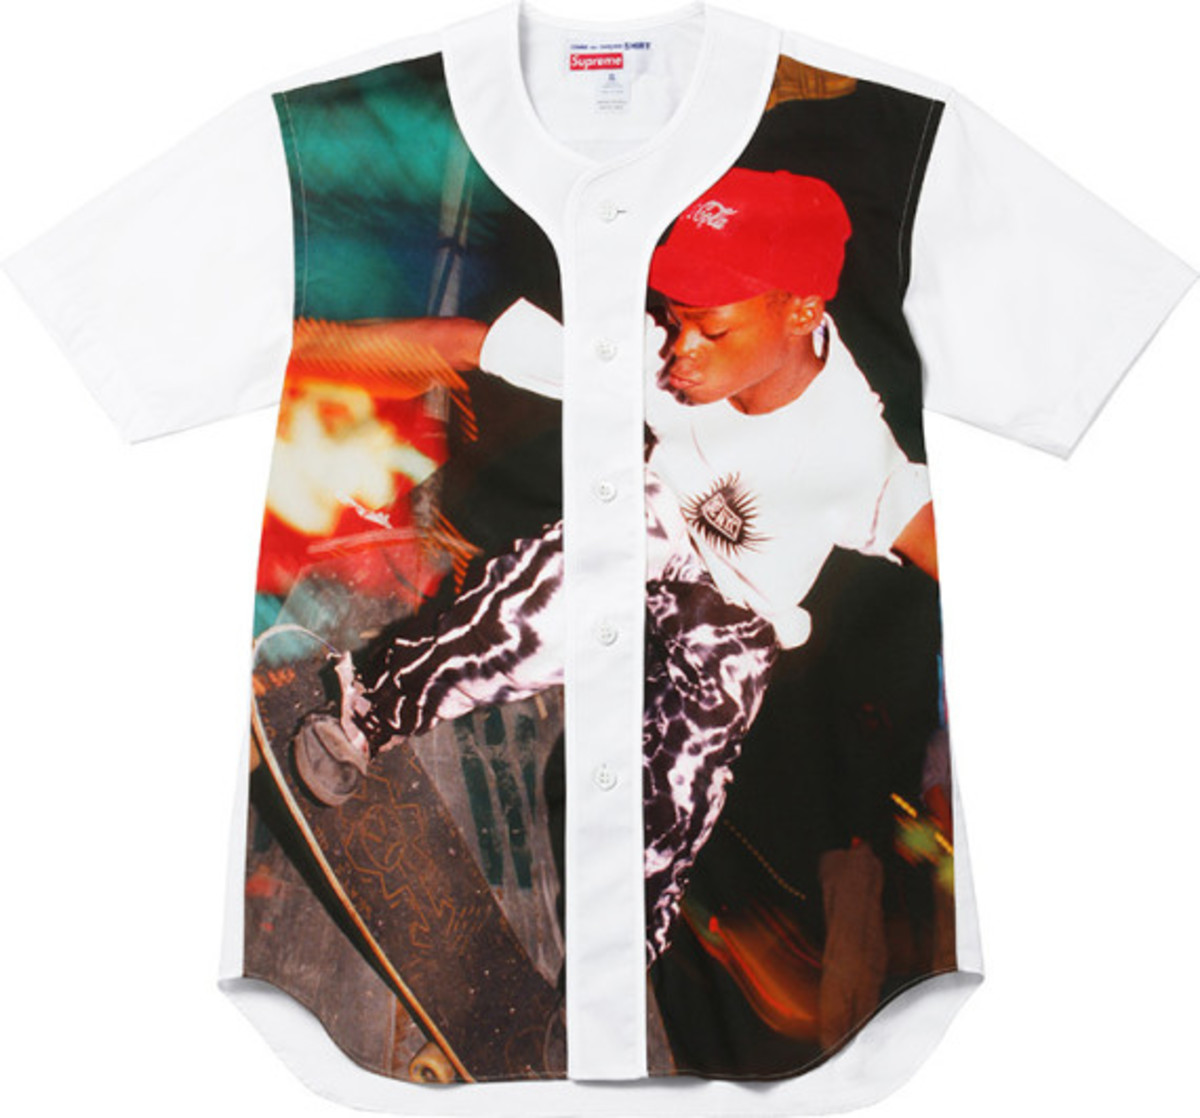 supreme-x-comme-des-garcon-shirt-2014-capsule-collection-harold-hunter-jason-dill-15